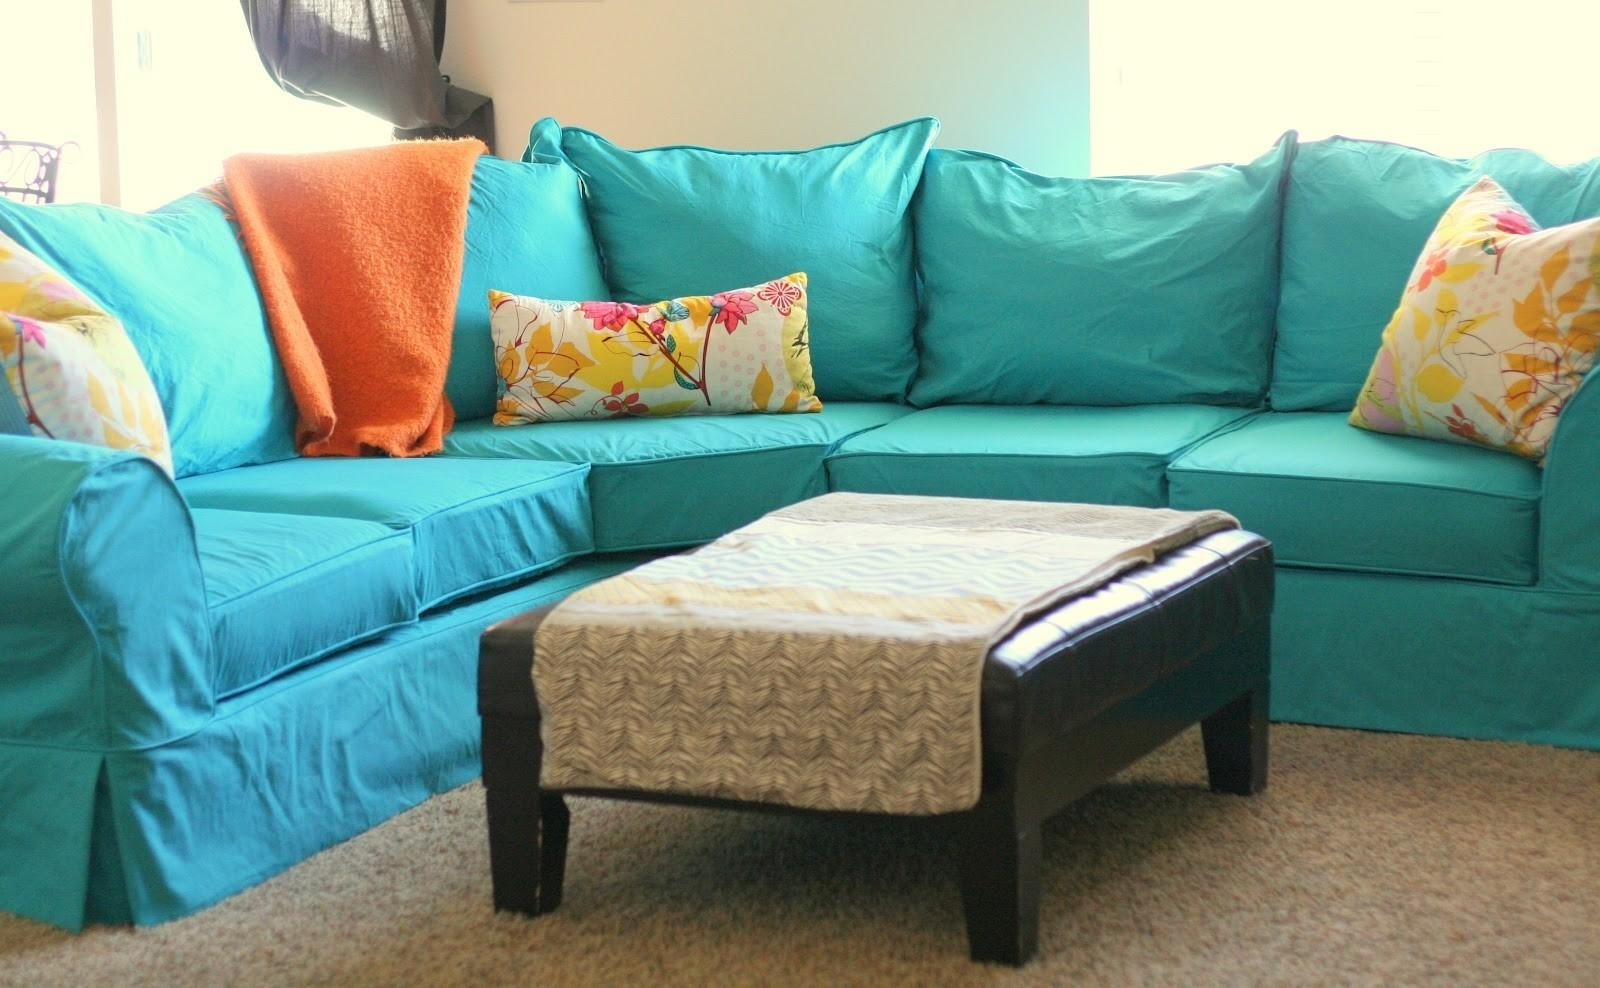 Attractive Turquoise Soa Slipcovers Ideas With Rather Loose Model With Regard To Turquoise Sofa Covers (Image 1 of 20)